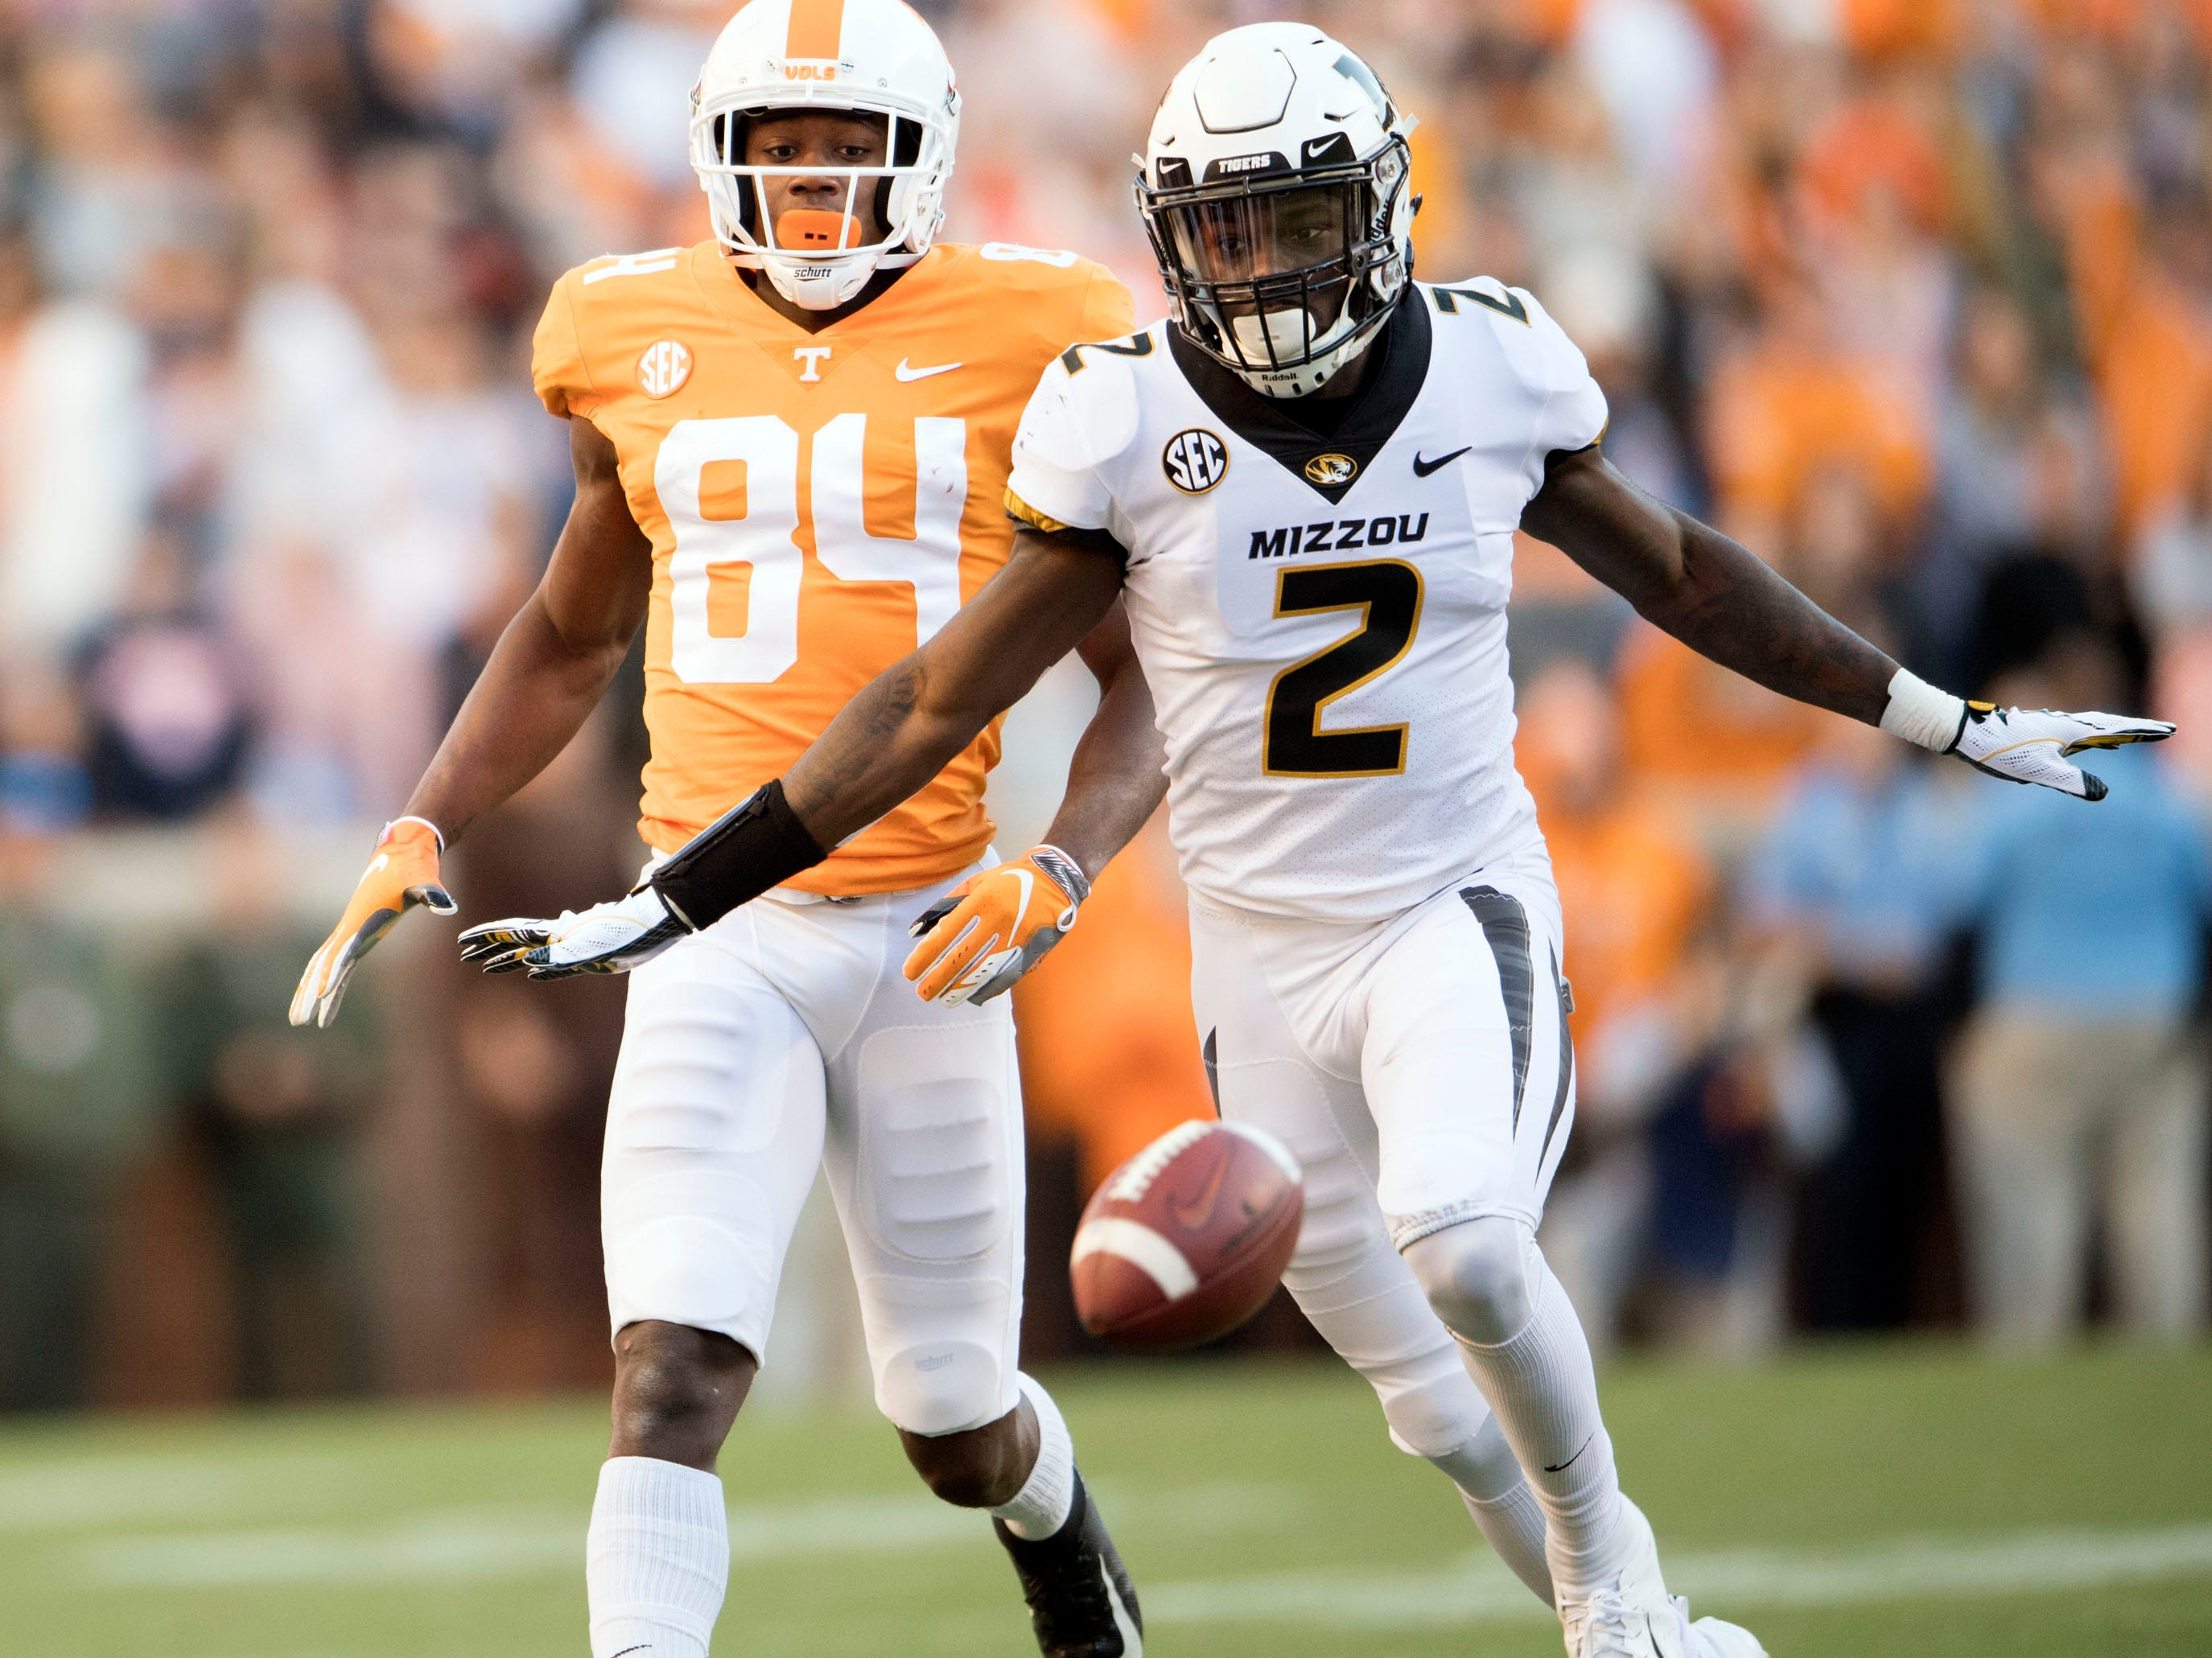 A pass misses Tennessee wide receiver Josh Palmer (84) while he was defended by Missouri defensive back DeMarkus Acy (2) during the Tennessee and Missouri football game on Saturday, November 17, 2018.